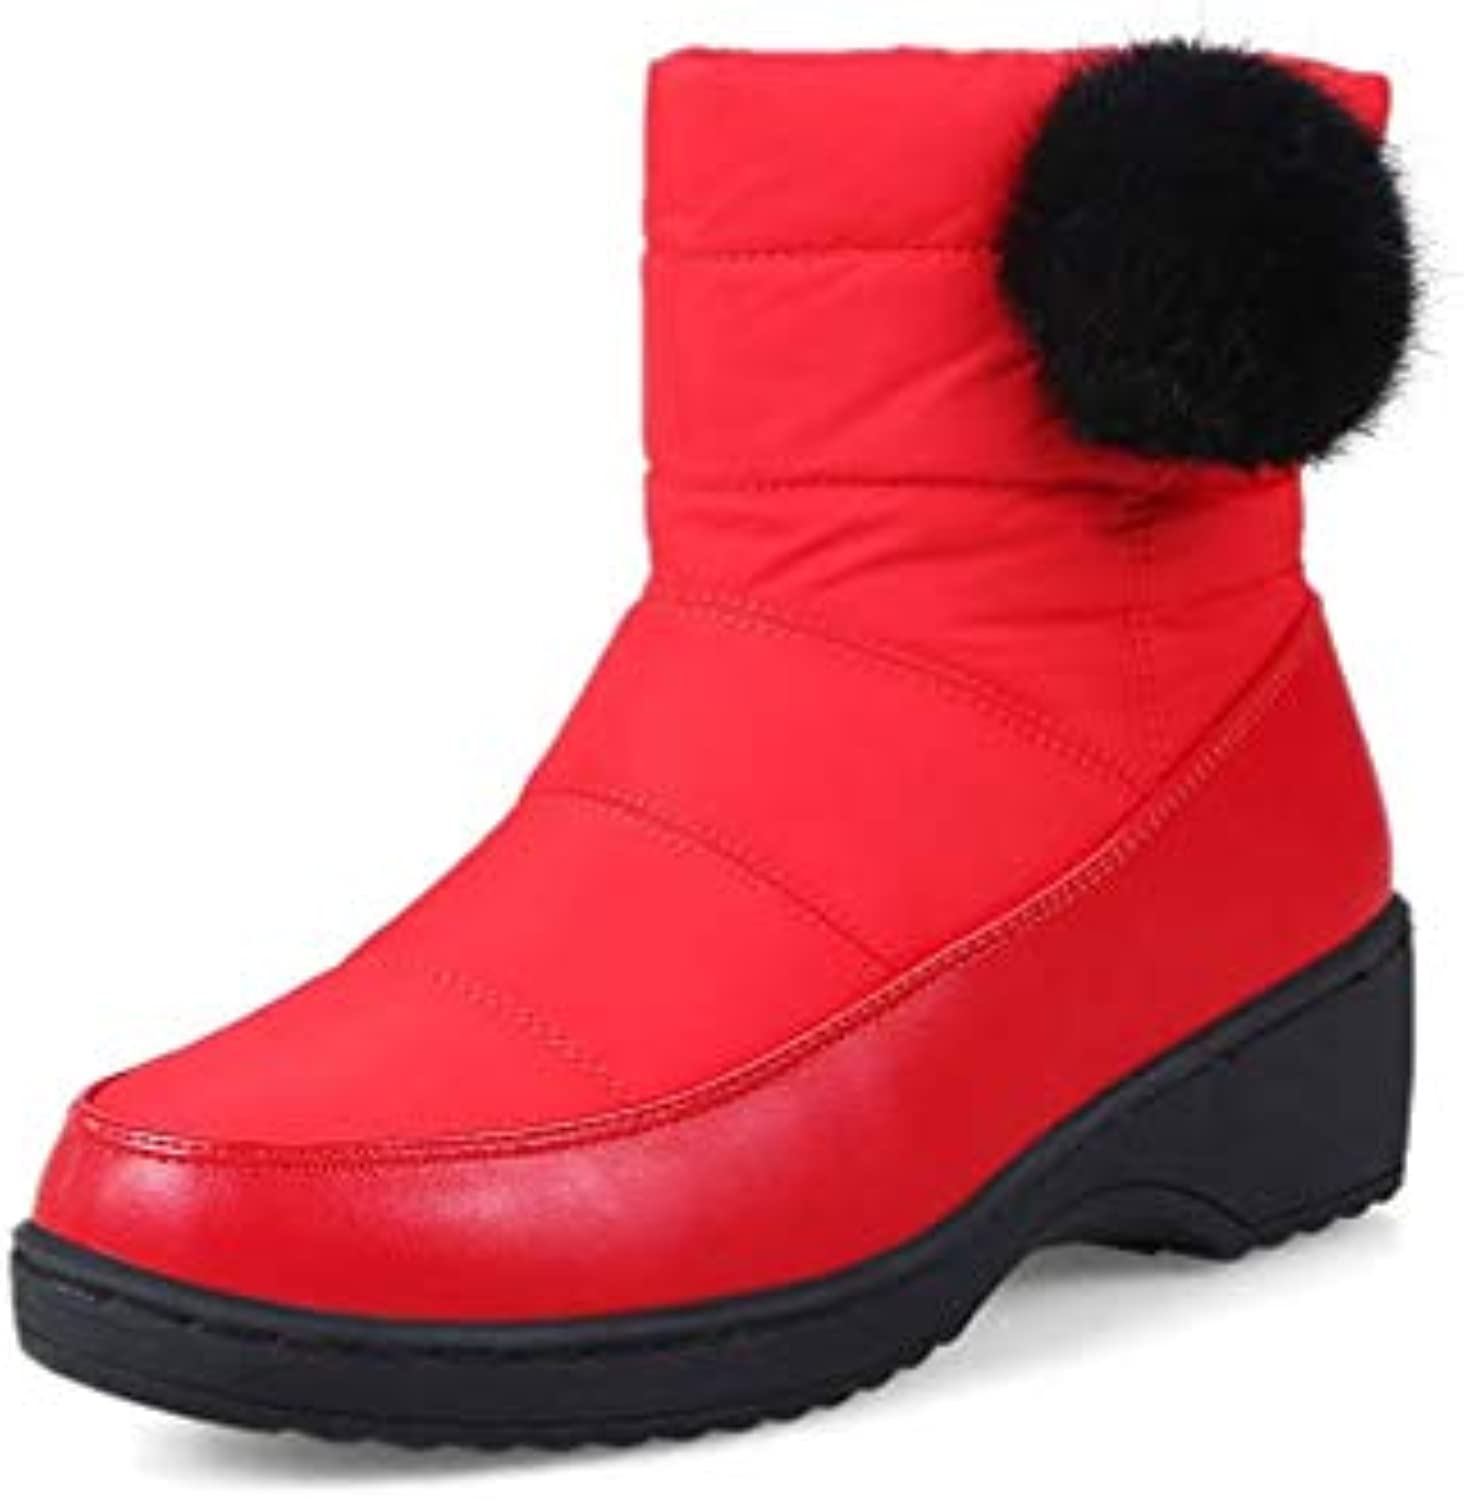 T-JULY Women New Russia Winter Snow Boots Fashion Waterproof Slip on Round Toe Boots Comfortable Ankle Boots